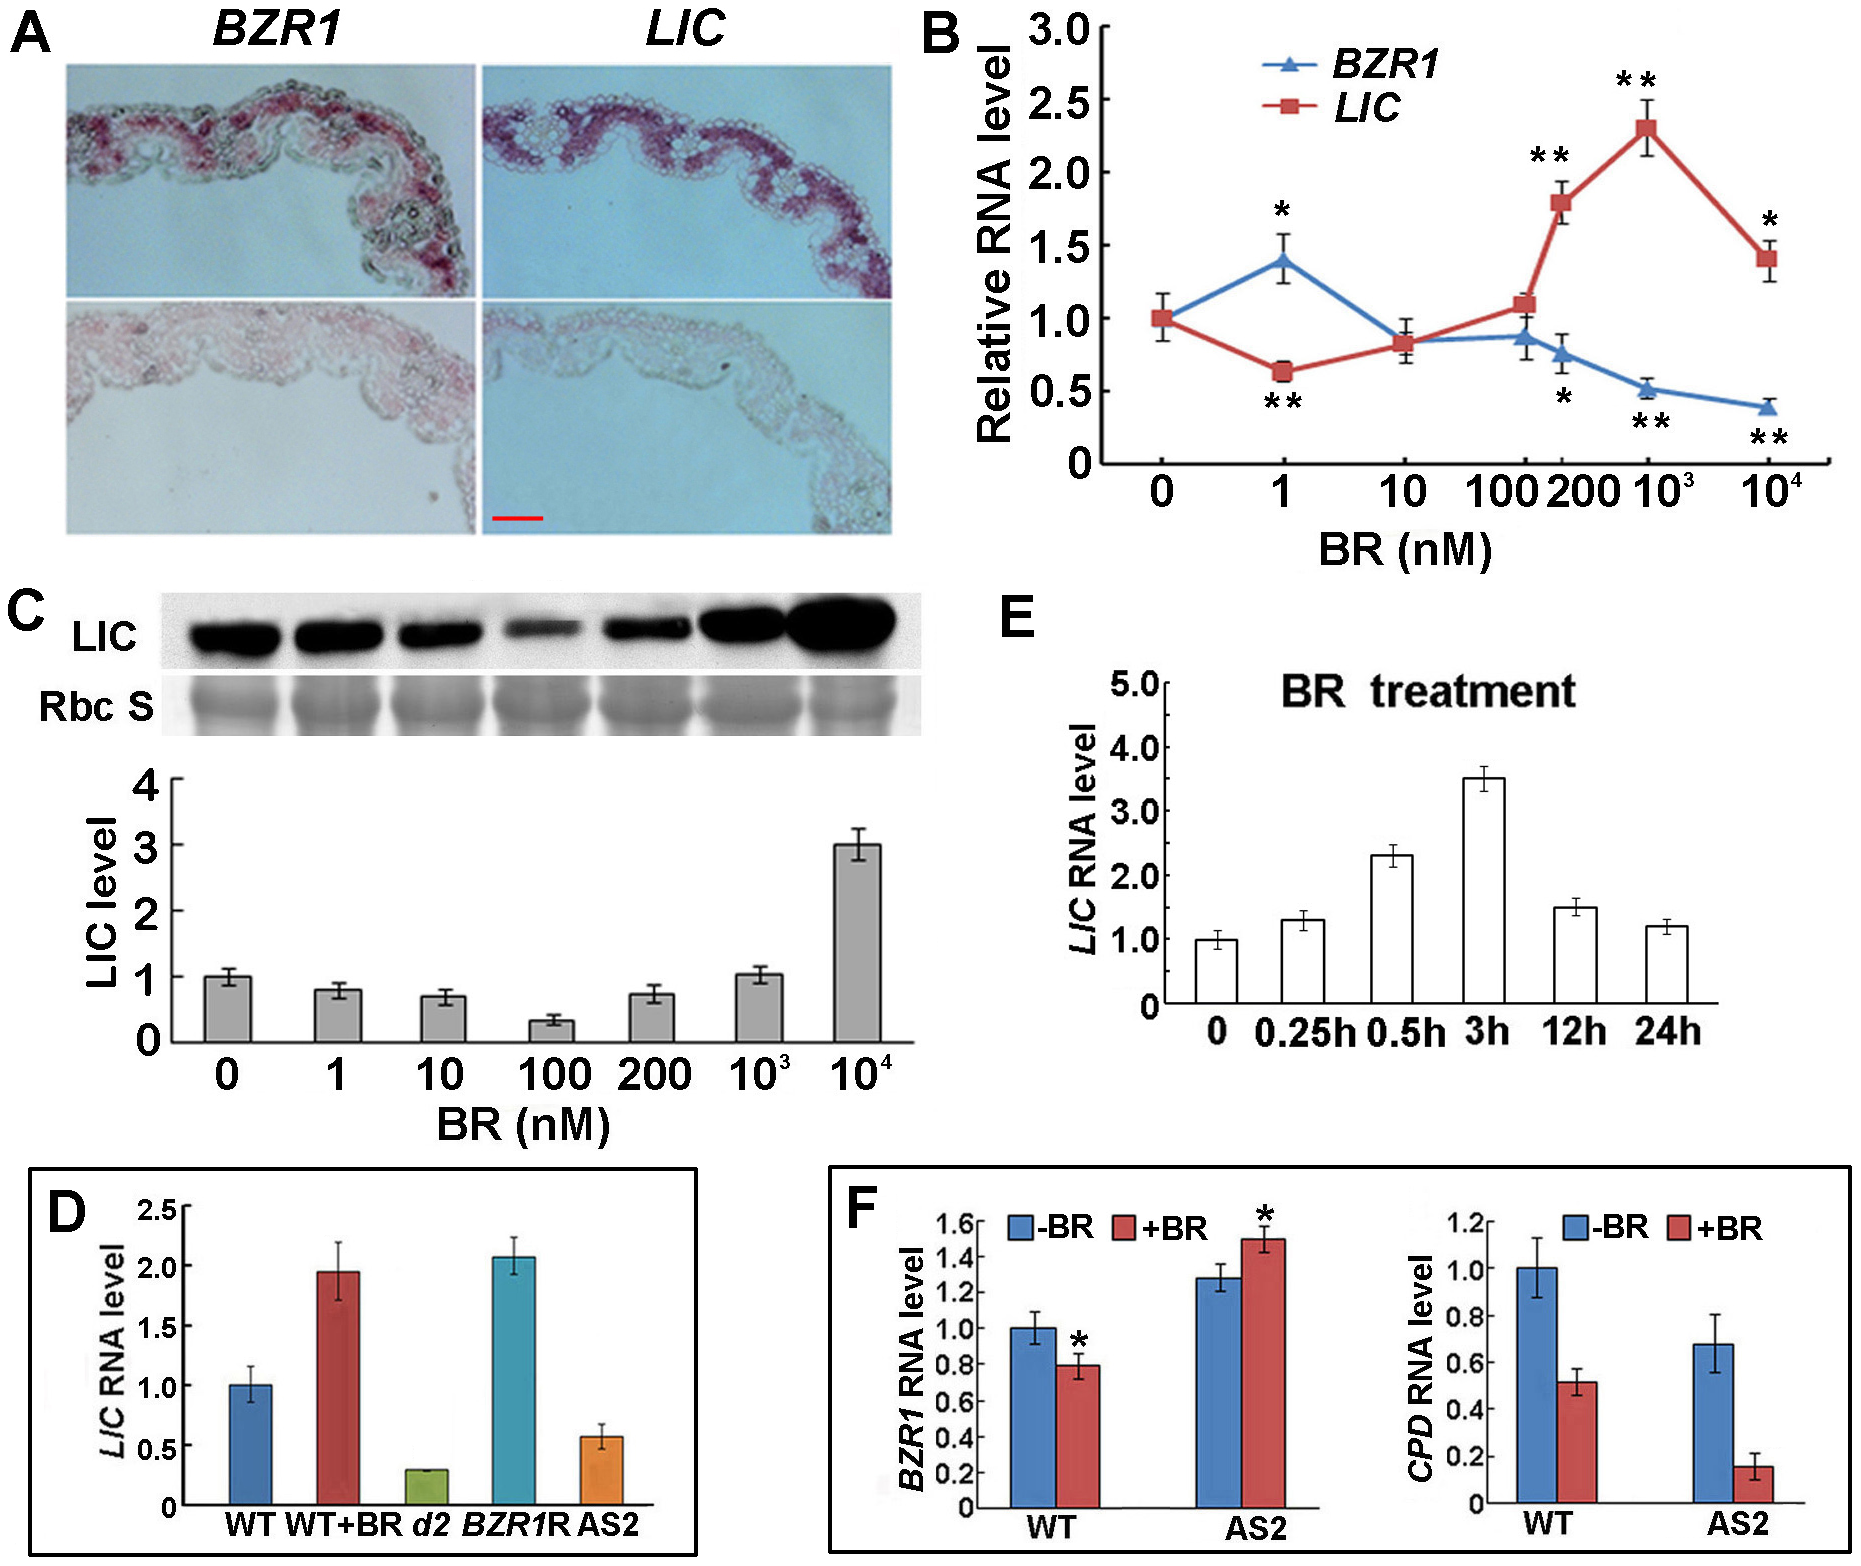 LIC and BZR1 expression patterns and their responses to BR.